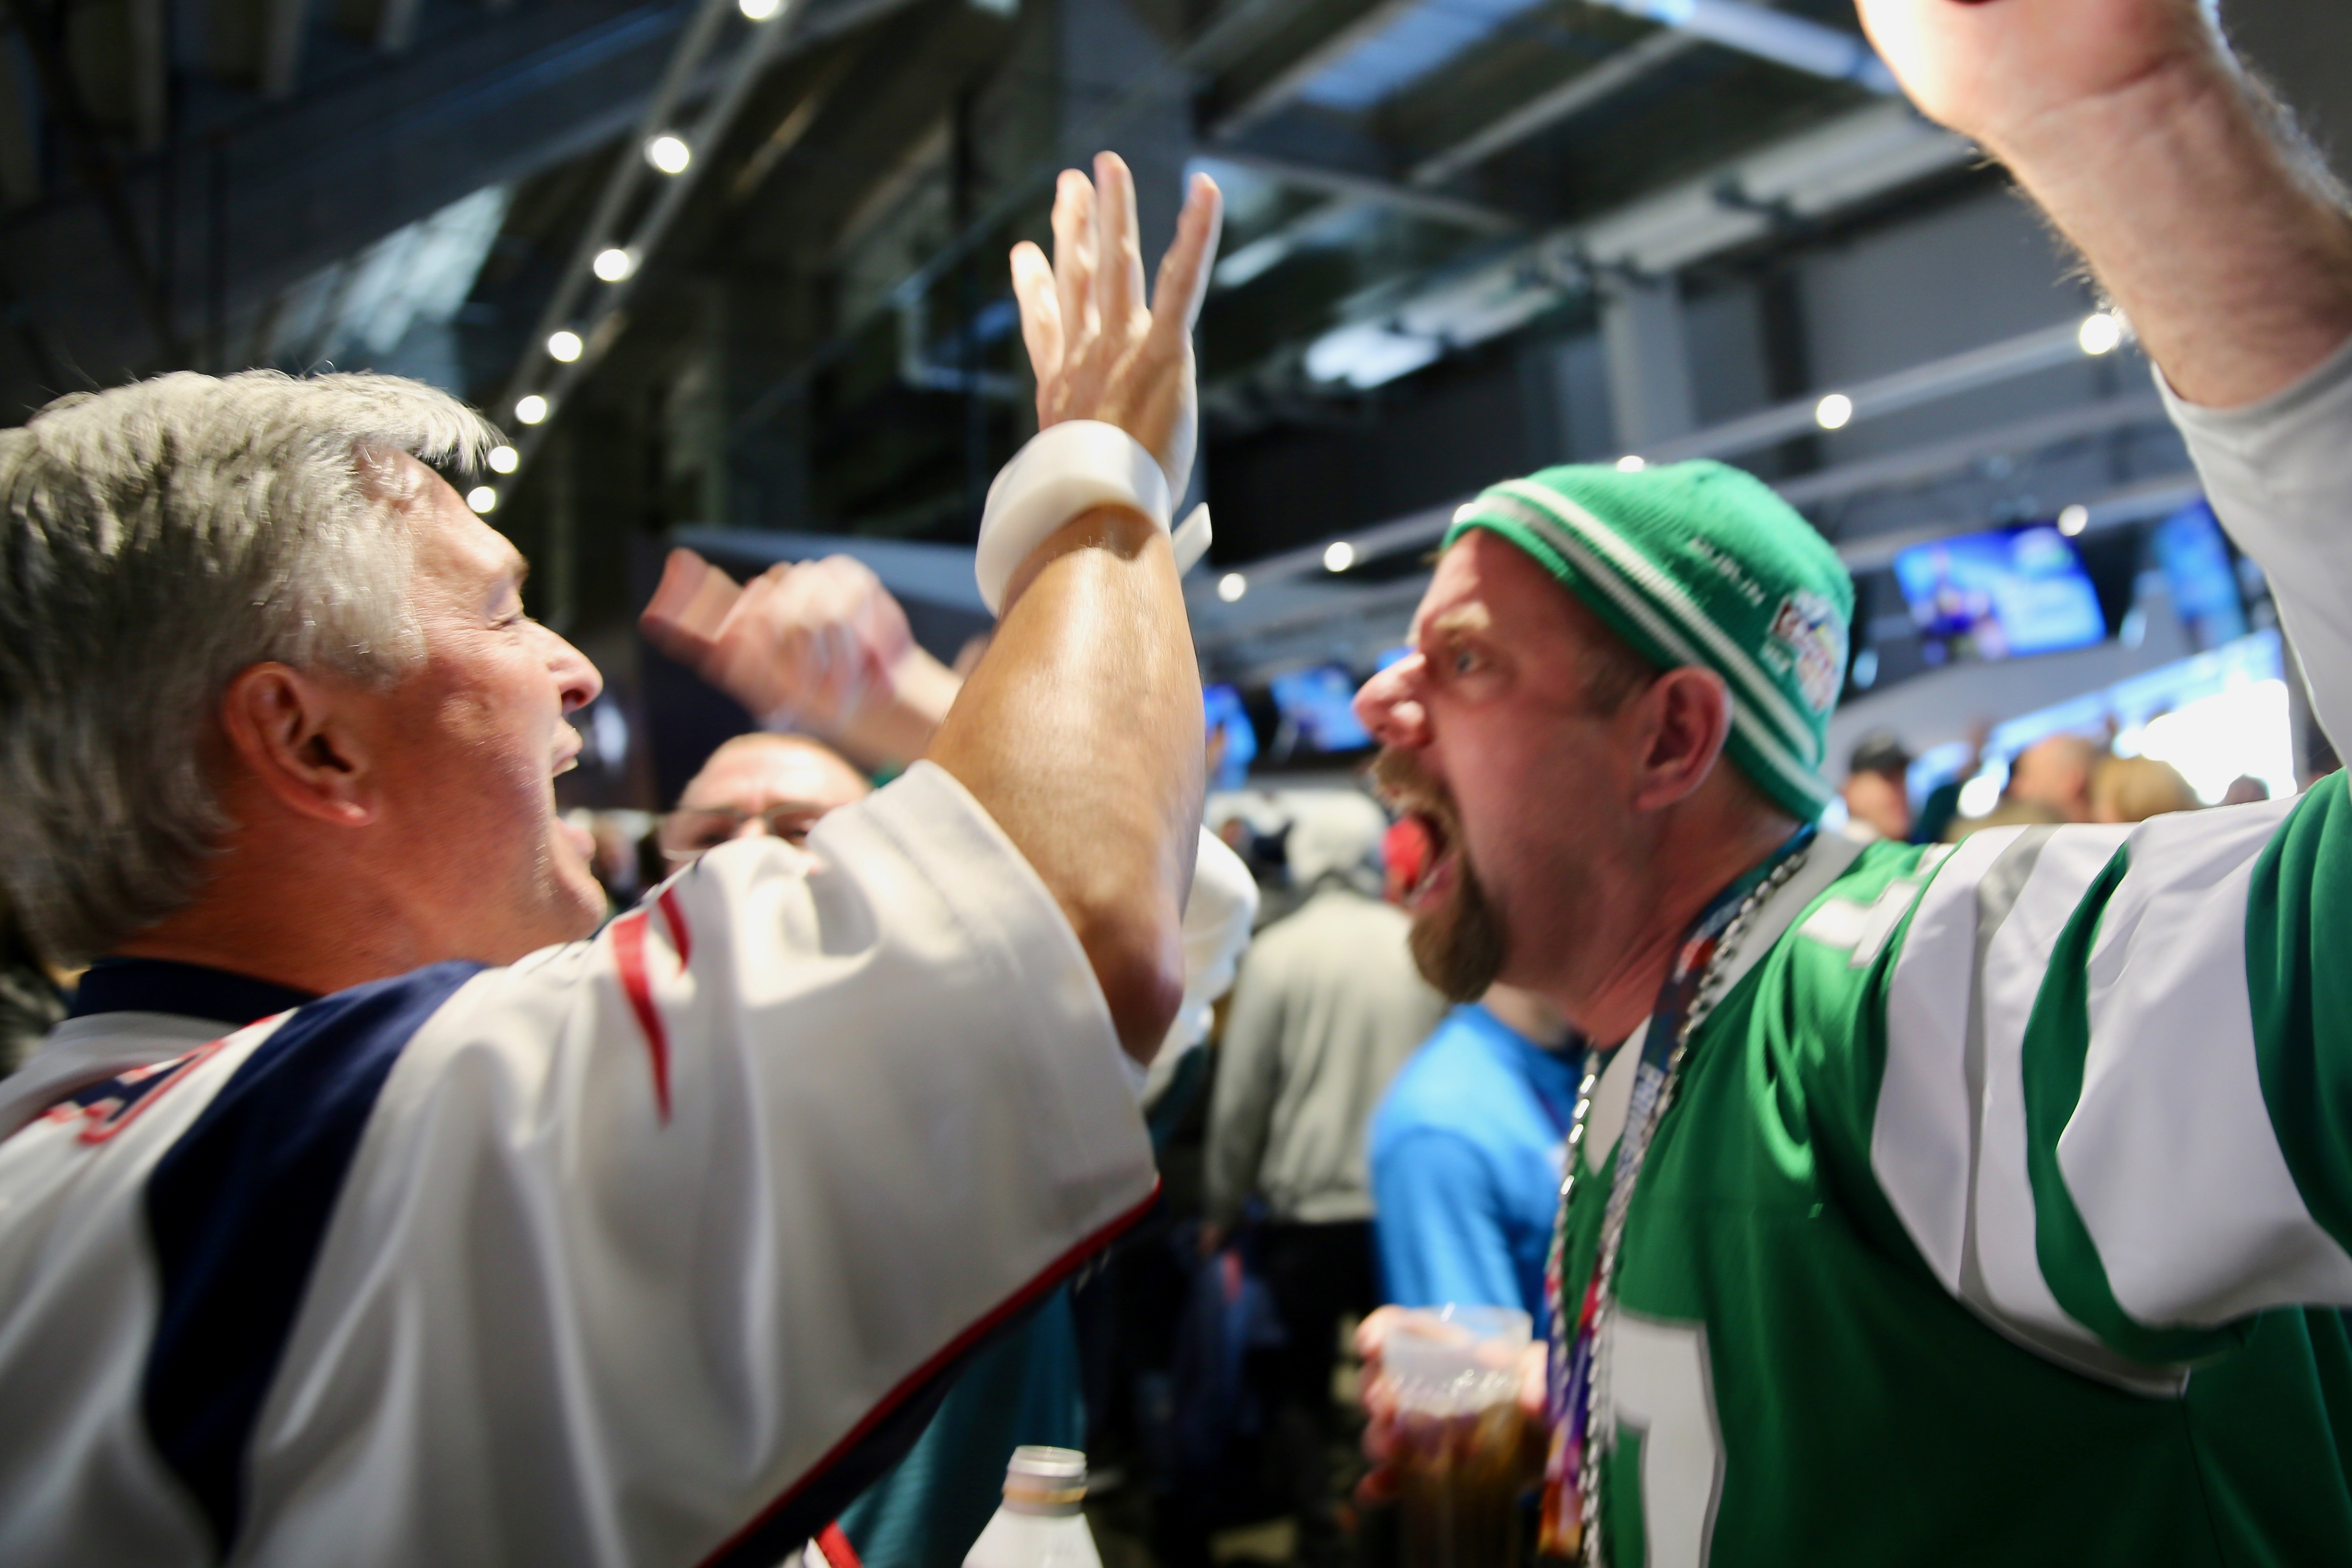 Two fans shout back and forth prior to kickoff of Super Bowl LII, the NFL championship game between the New England Patriots and the Philadelphia Eagles, in Minneapolis, Minnesota (Brian Allen/VOA)